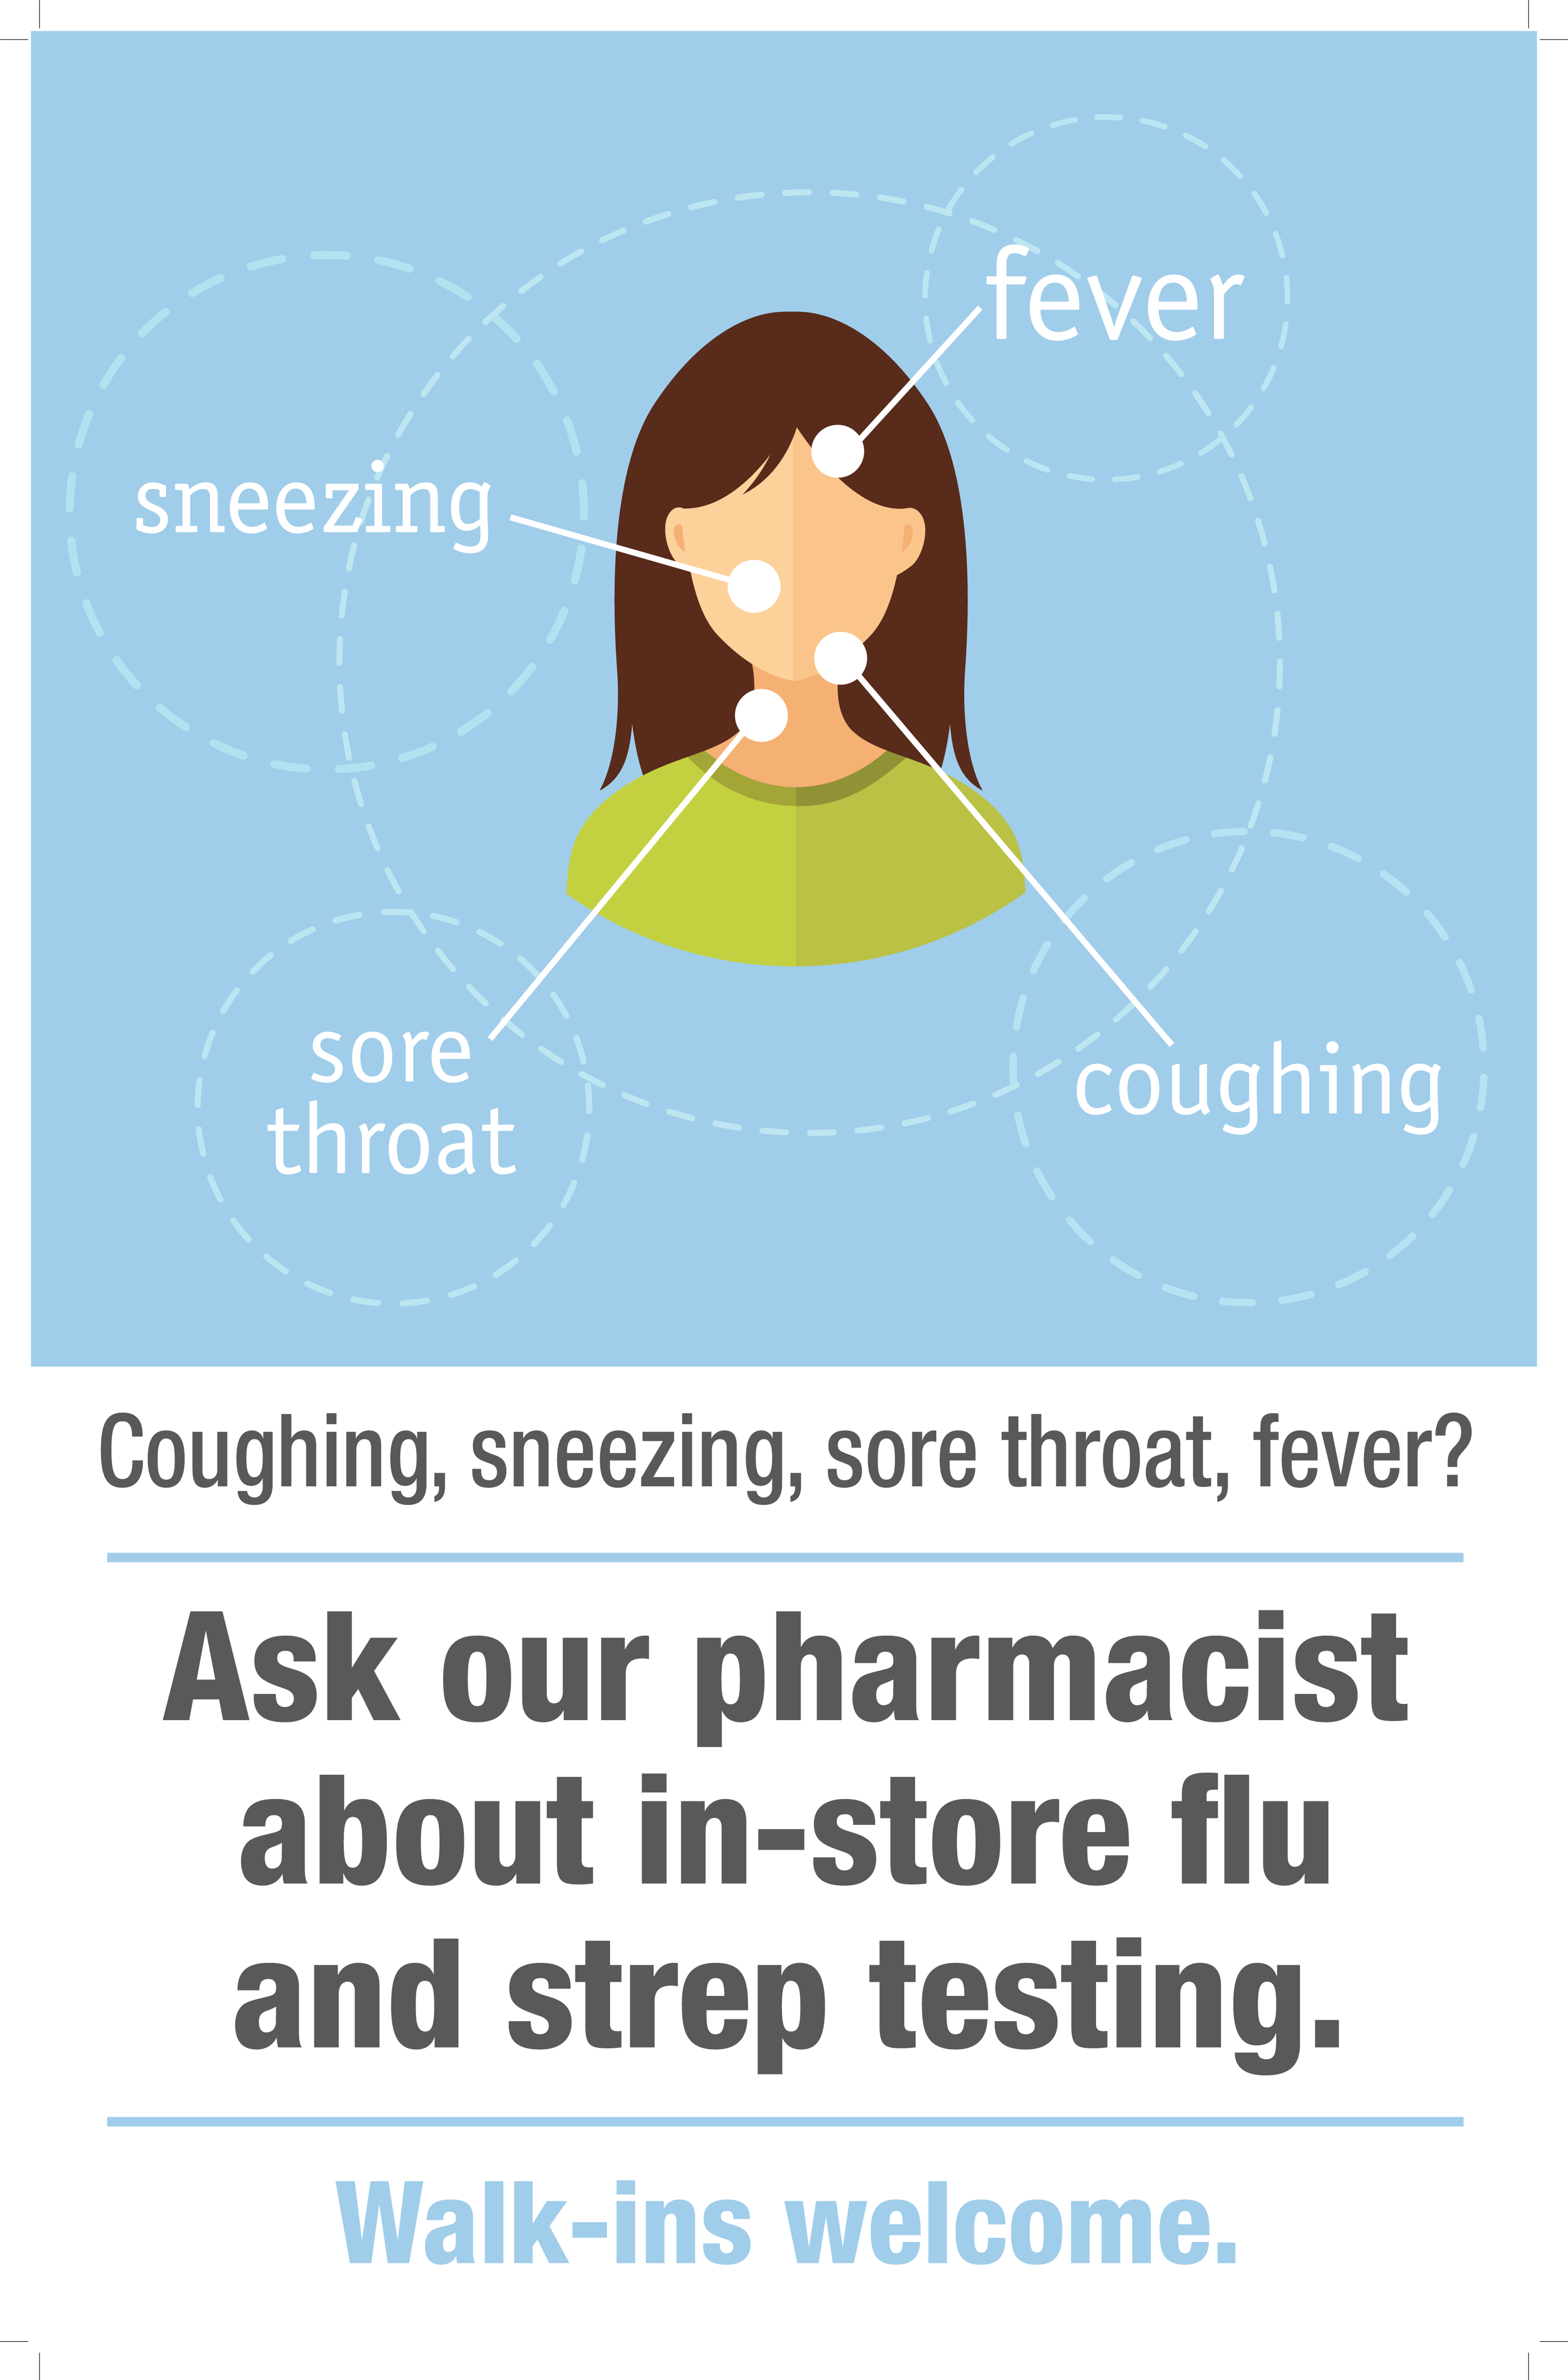 flu_strep_coughing_fever_sore_throat_sneezing_briargrove_pharmacy_and_gifts